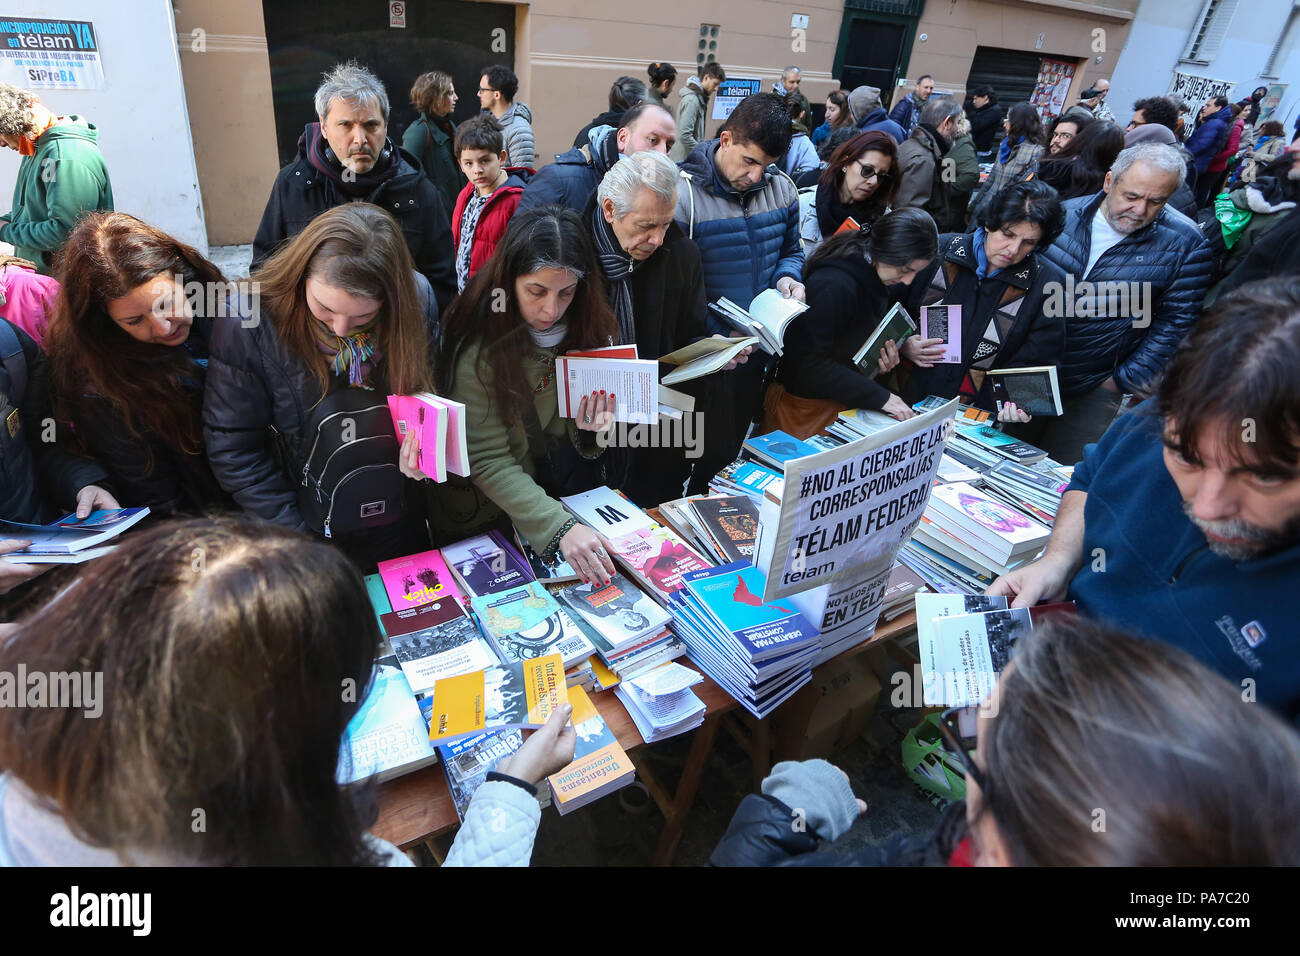 Writers, journalists, booksellers and workers of the Argentine State-Run News Agency (Télam) organised  today in front of the agency building a book swap in order to raise awareness on the conflict over the dismissal of 357 workers by Mauricio Macri's Administration. Stock Photo